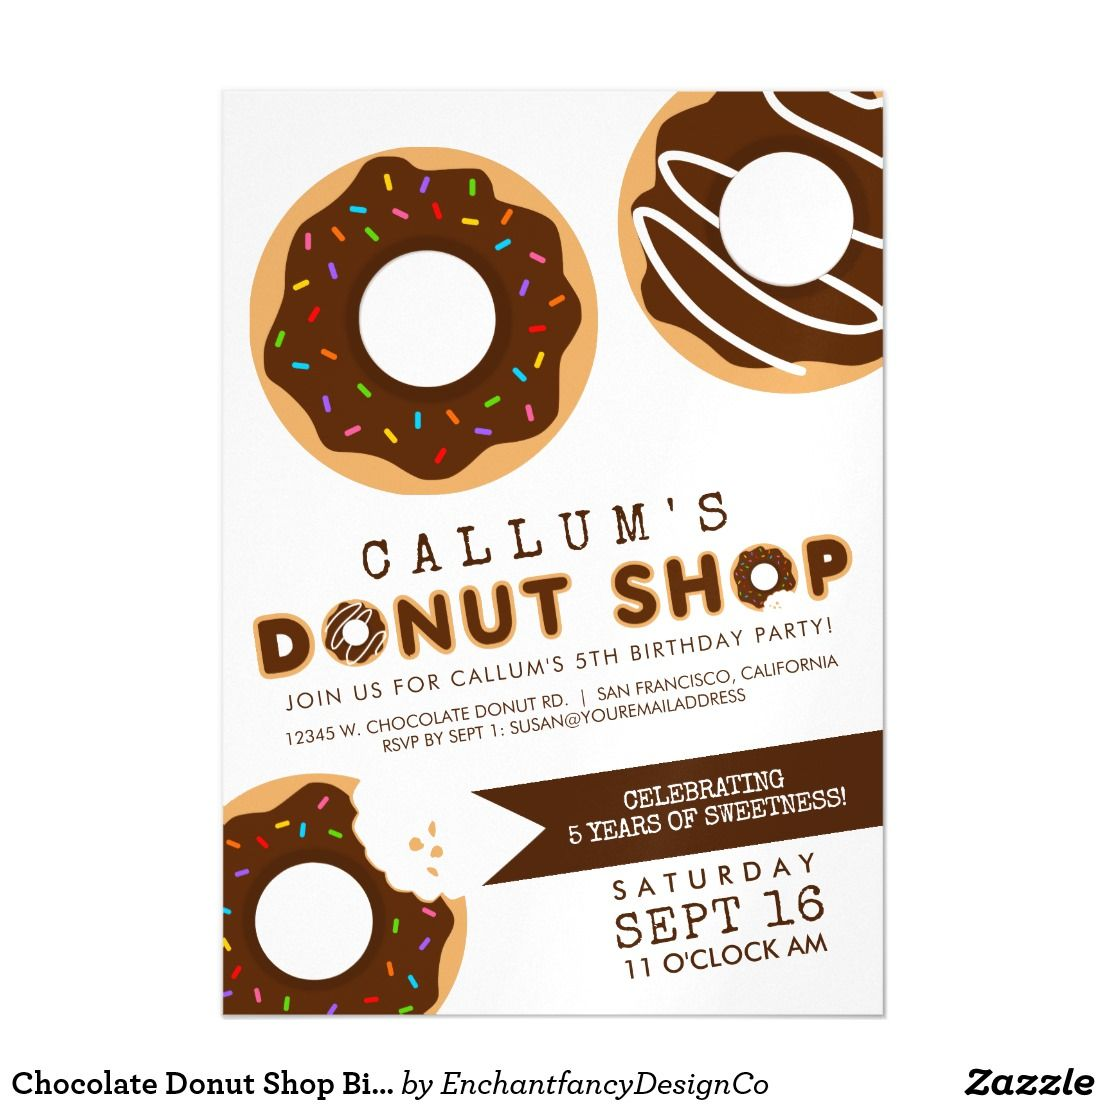 Chocolate donut shop birthday party magnetic card the chocolate chocolate donut shop birthday party magnetic card the chocolate donut shop birthday party magnet invitation will help set the tone for a sweet celebration filmwisefo Choice Image